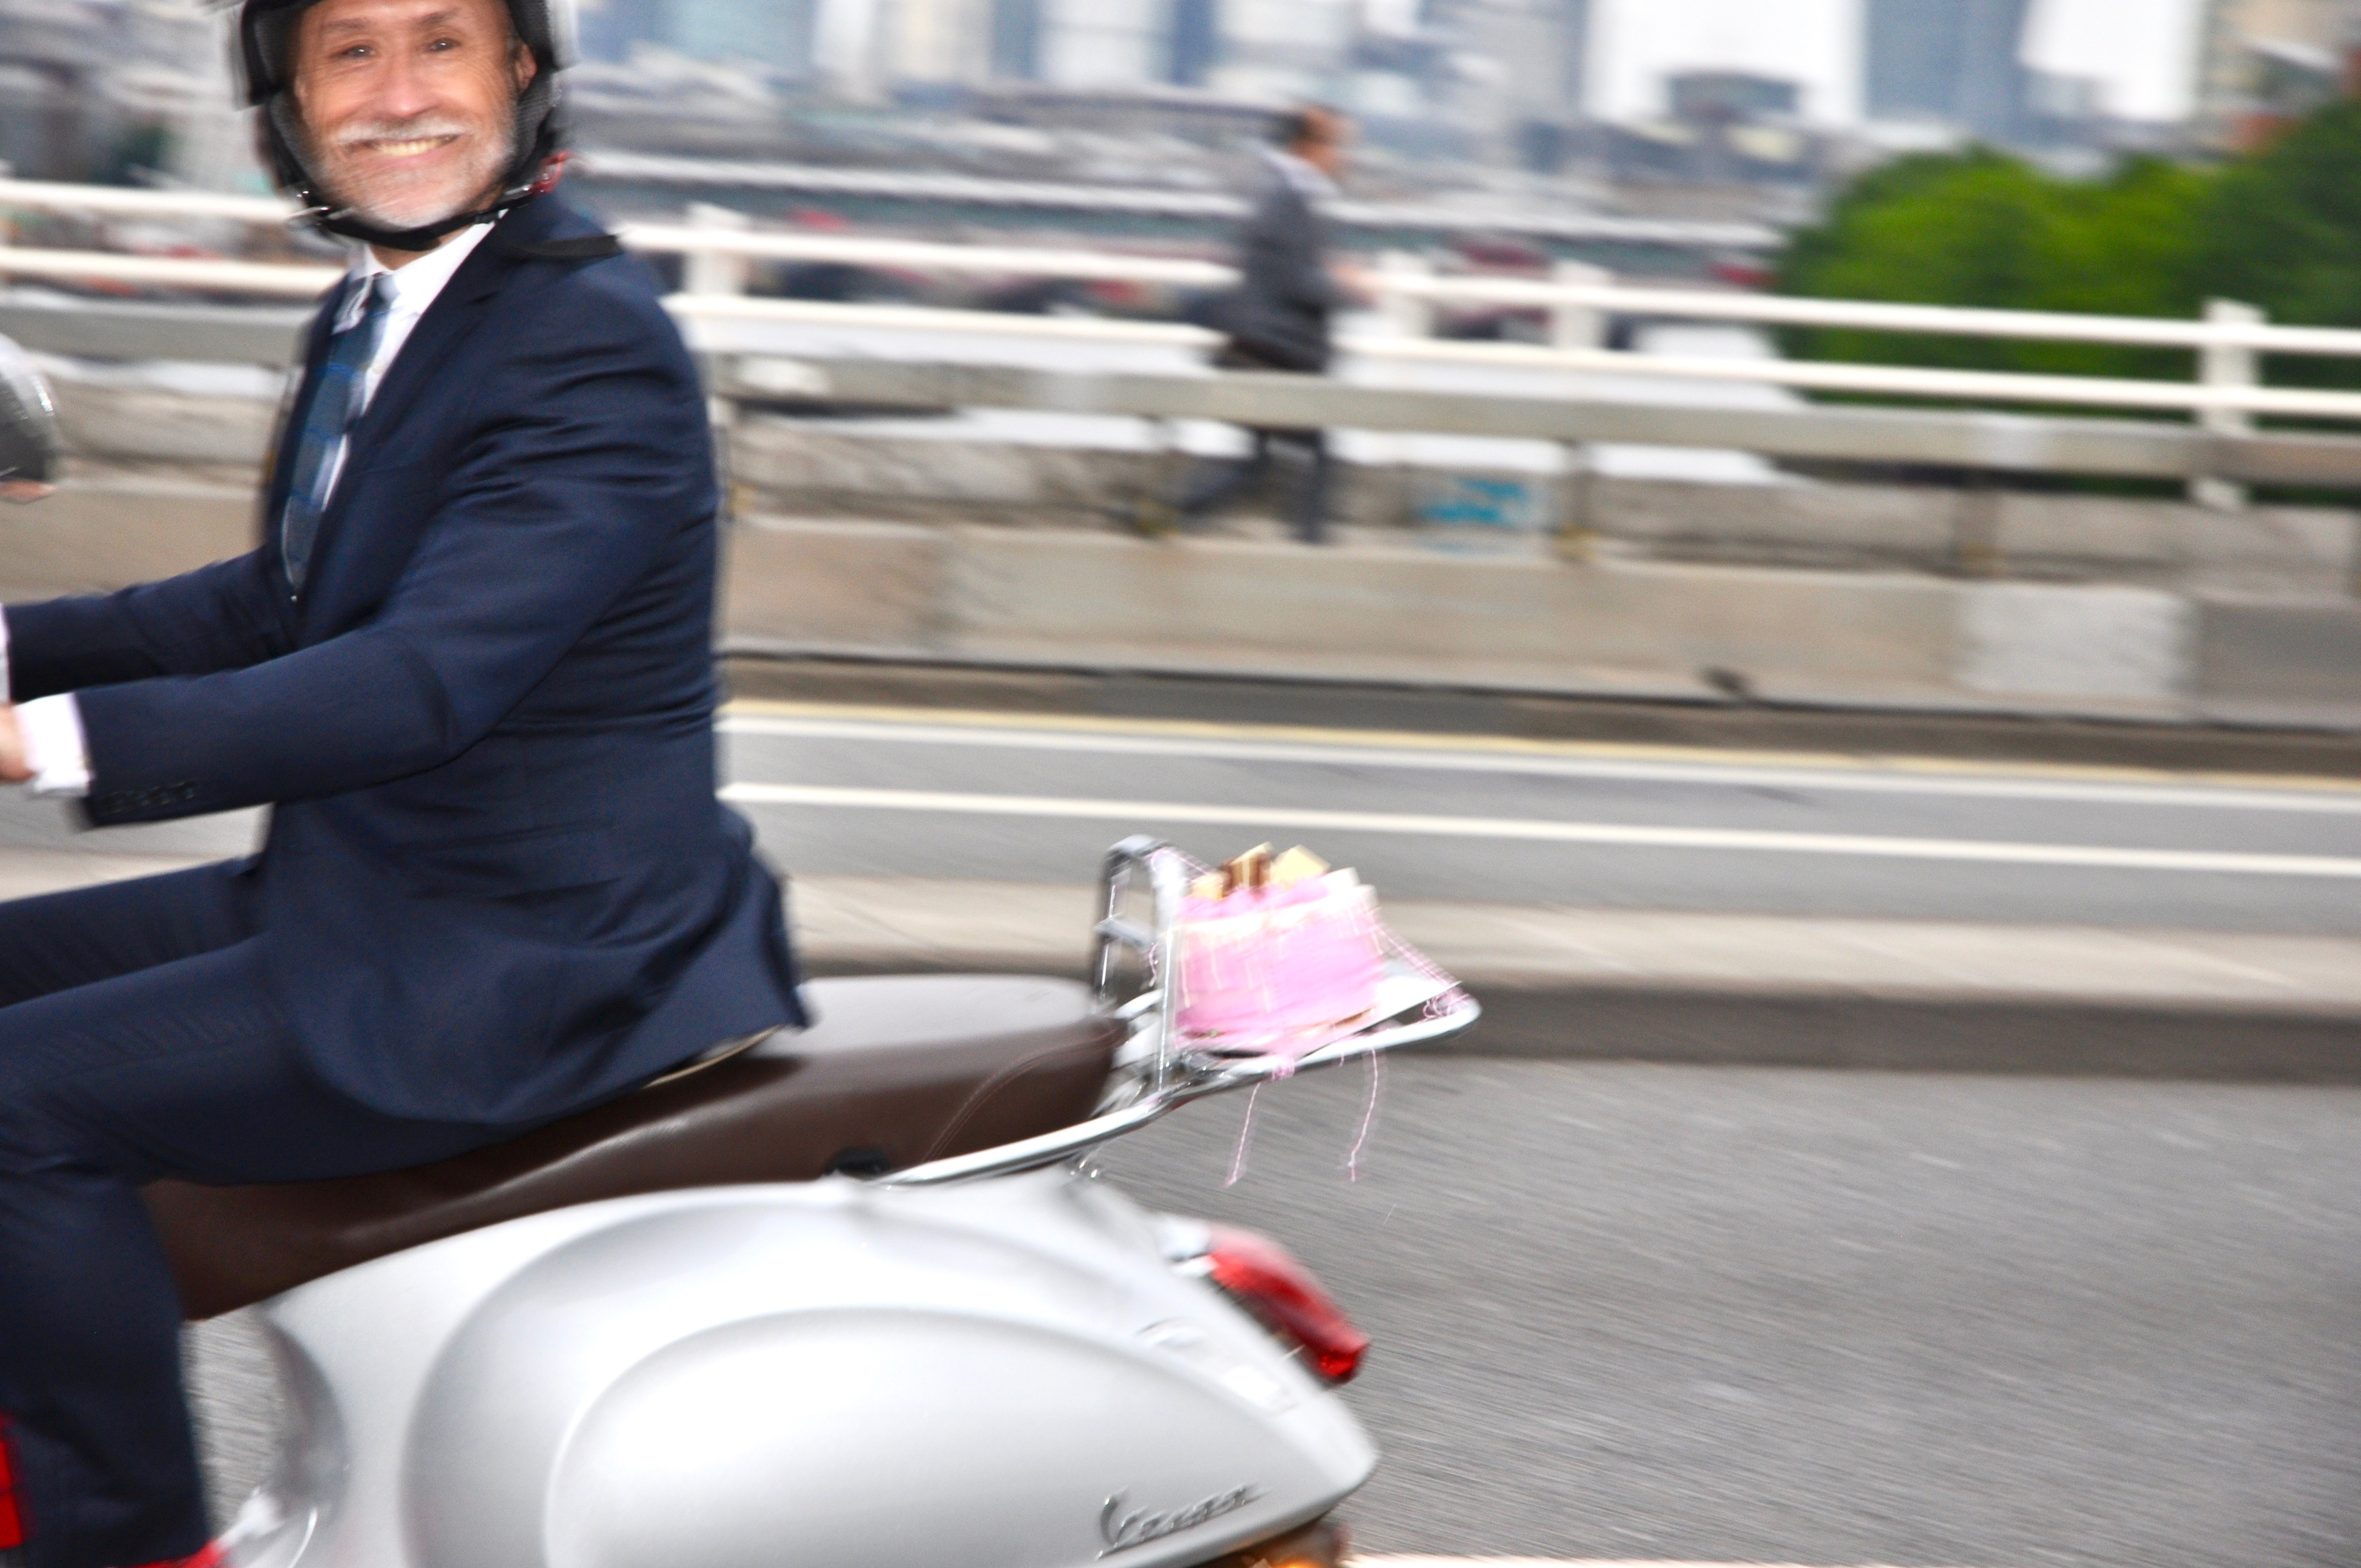 Richard Wilson on his scooter with CAKE